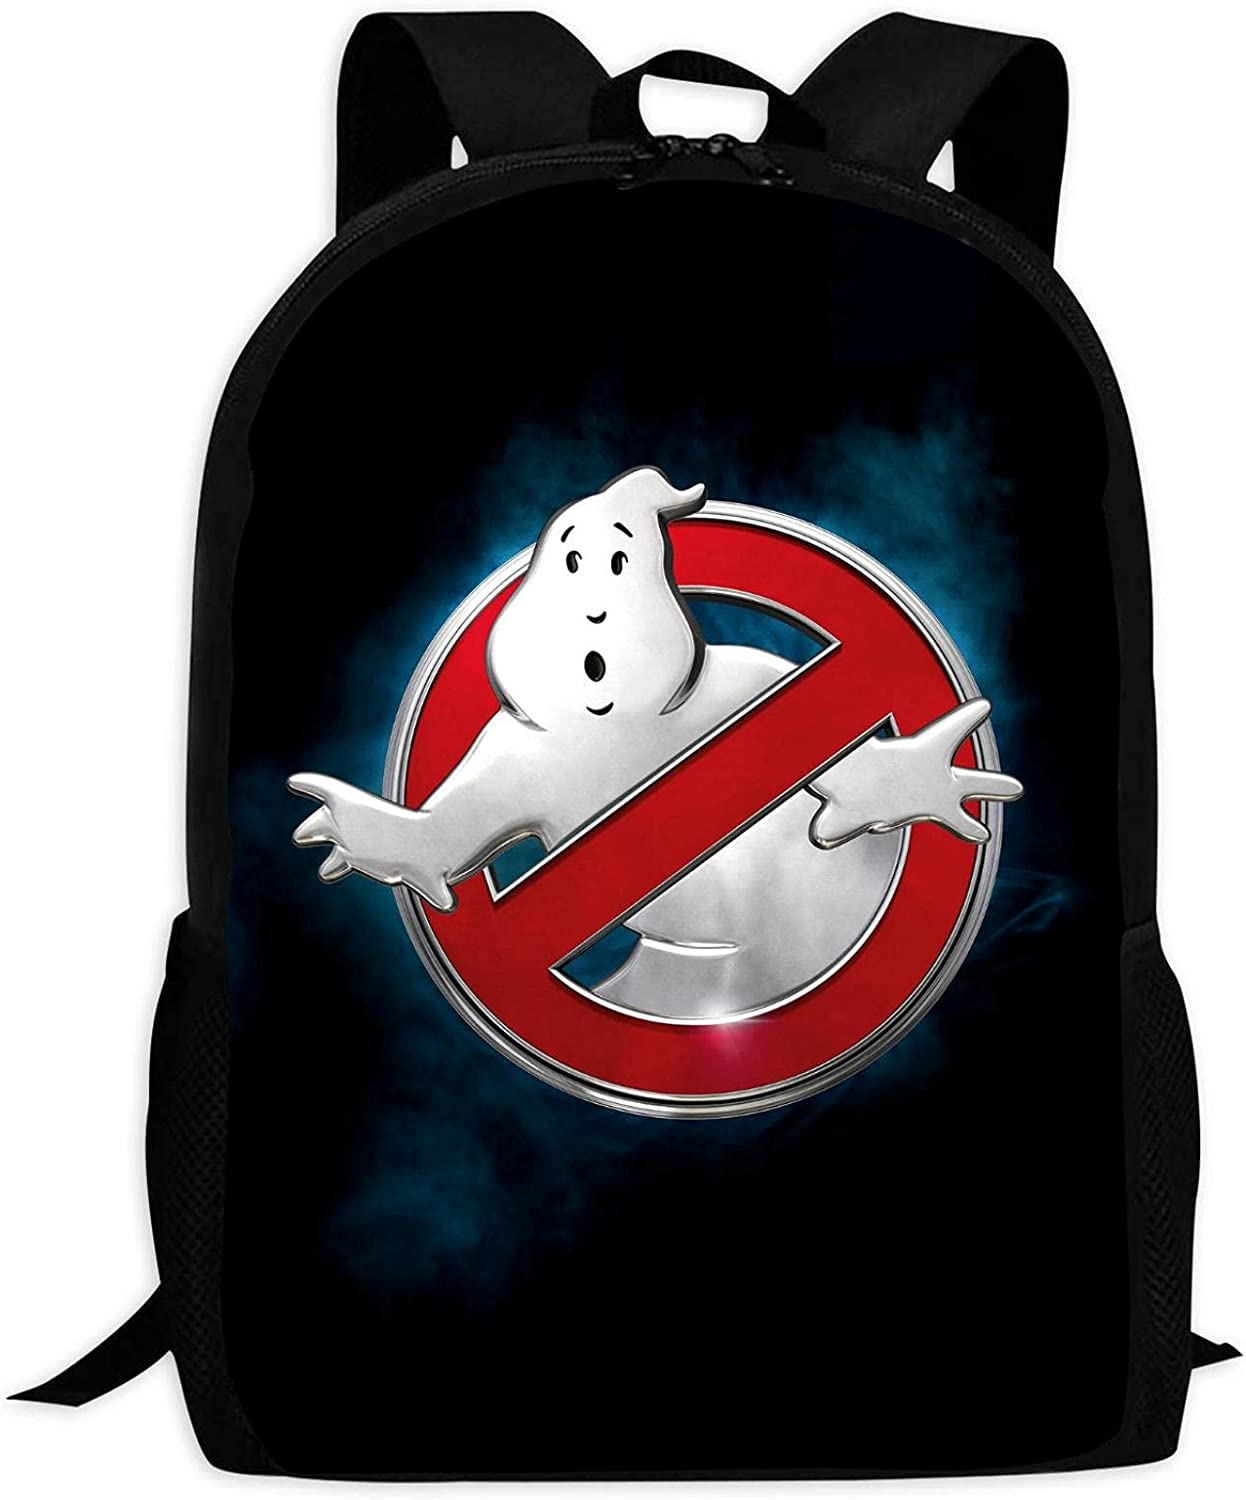 Ghost-Bus-ters Kids Backpack School Bag Mail order Students Book Leisur Max 62% OFF